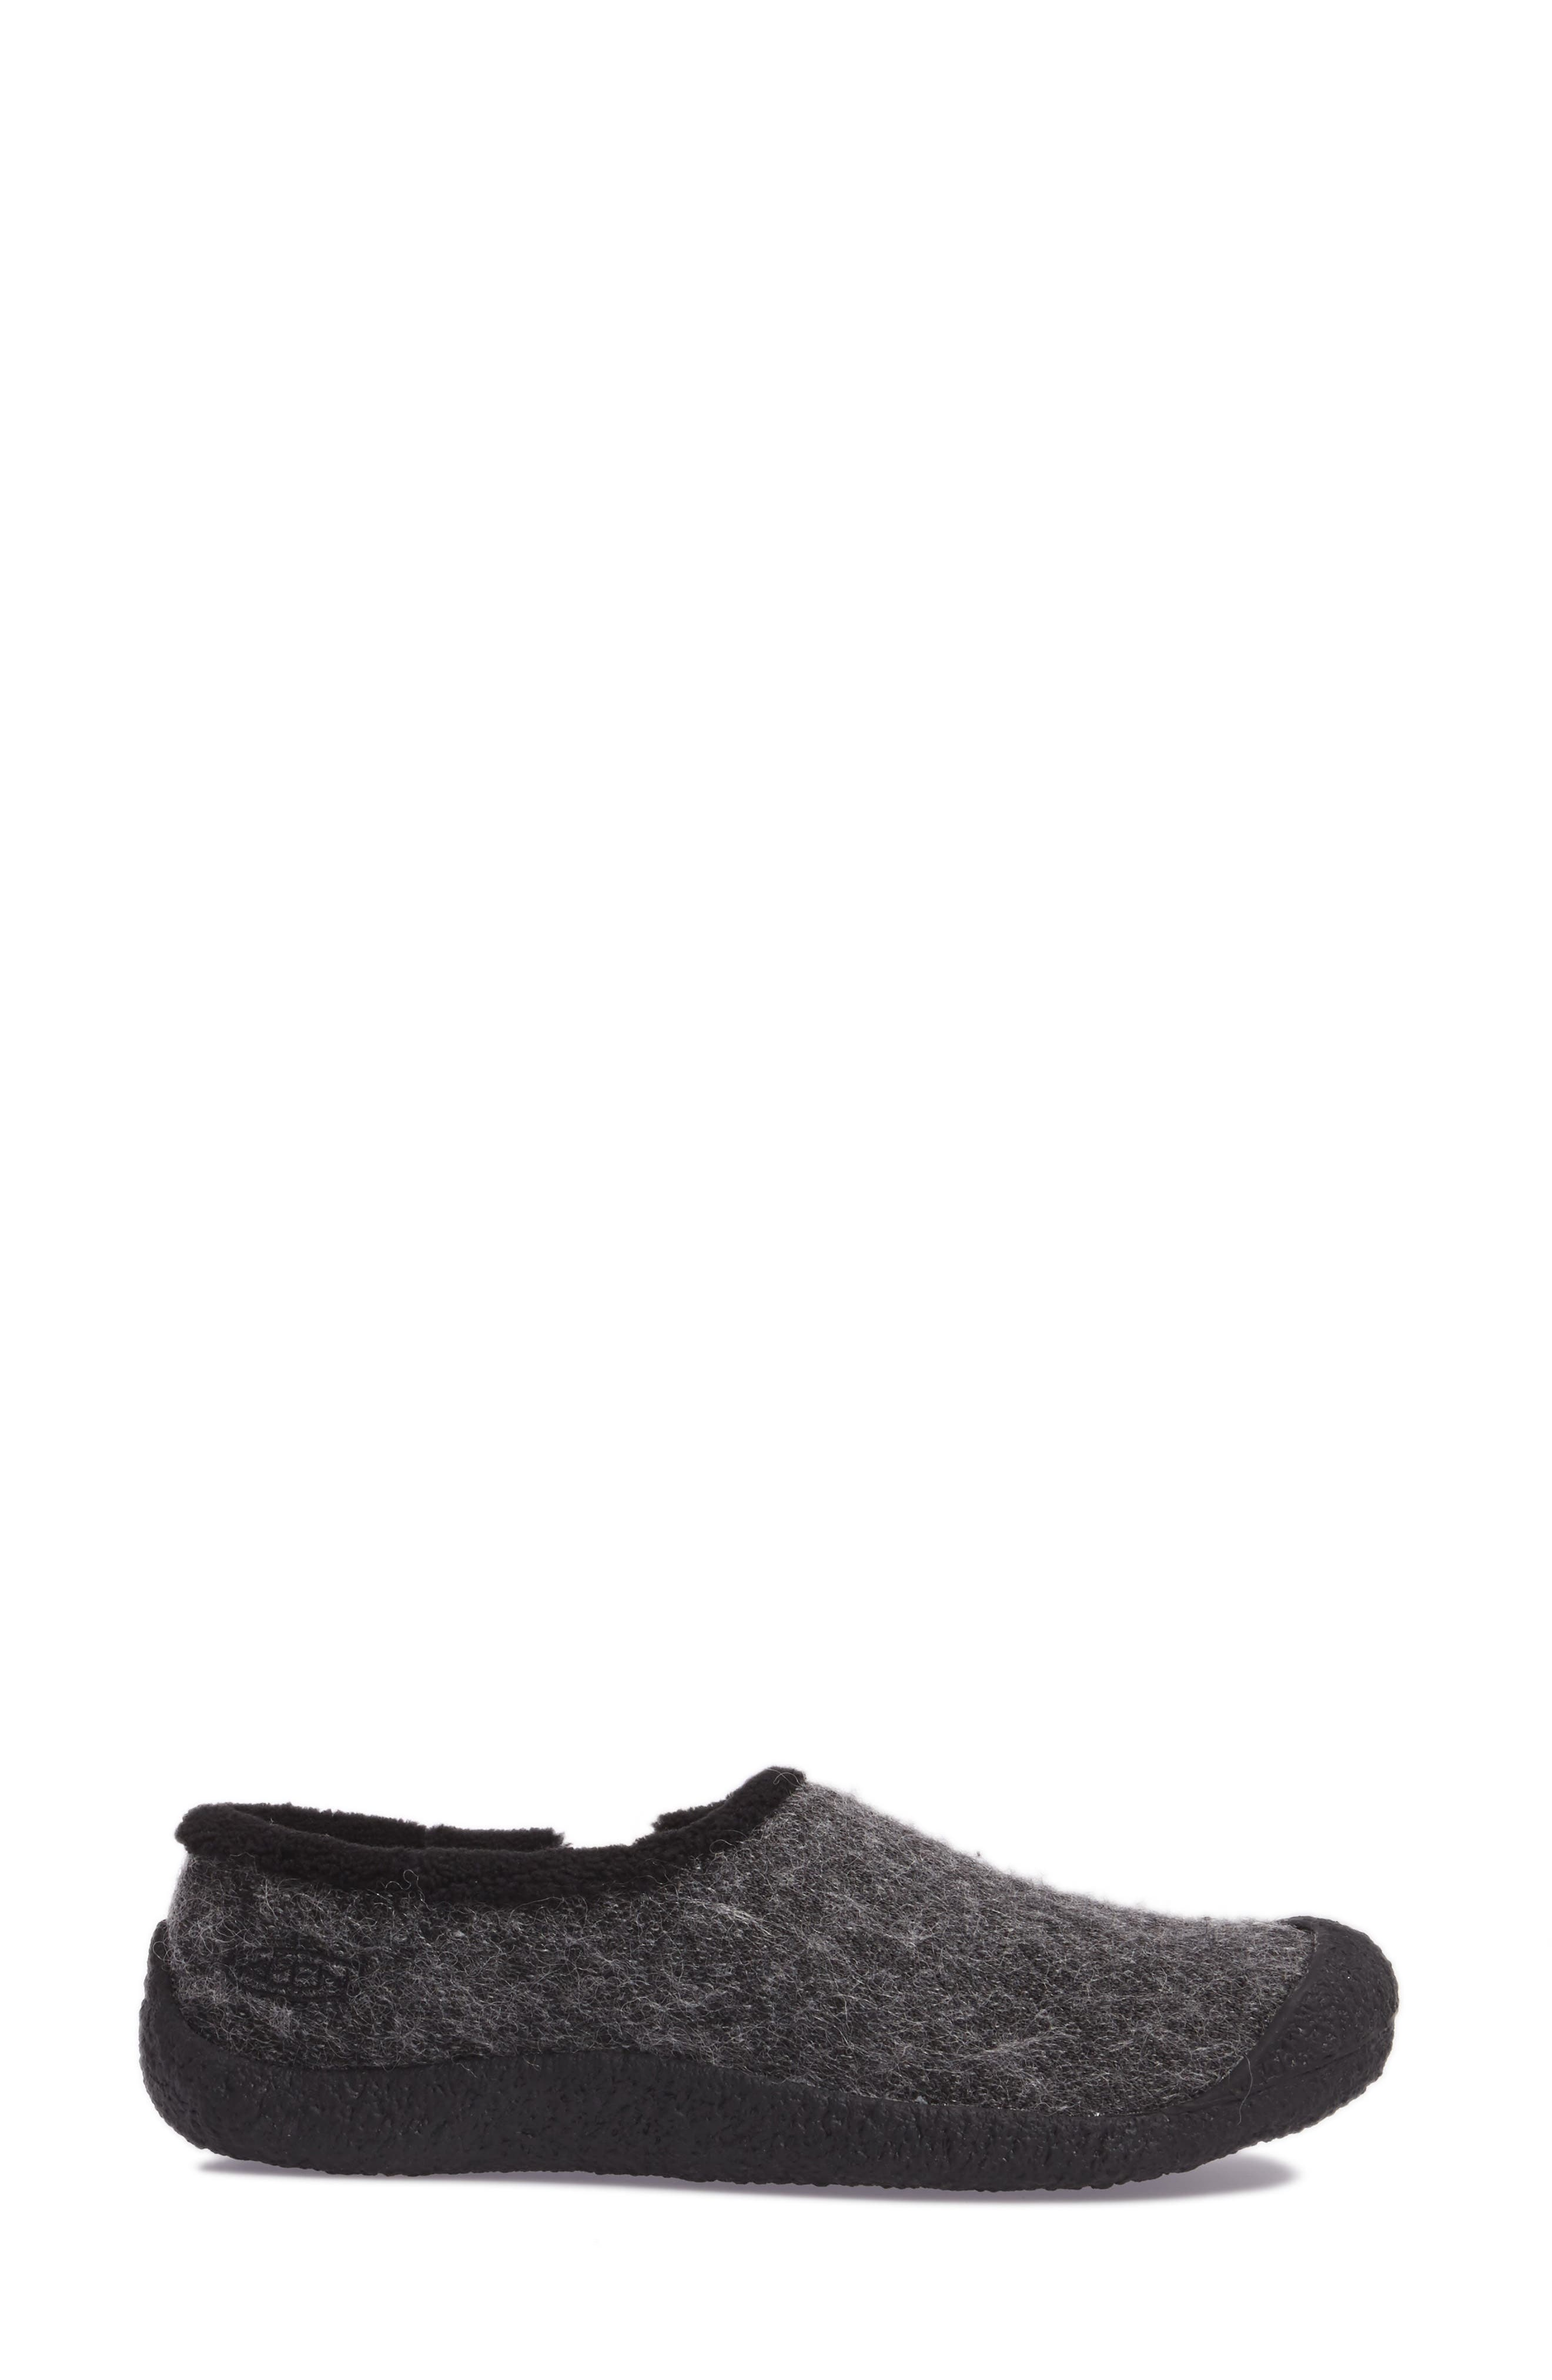 Howser Round Toe Wool Slip-on,                             Alternate thumbnail 3, color,                             001